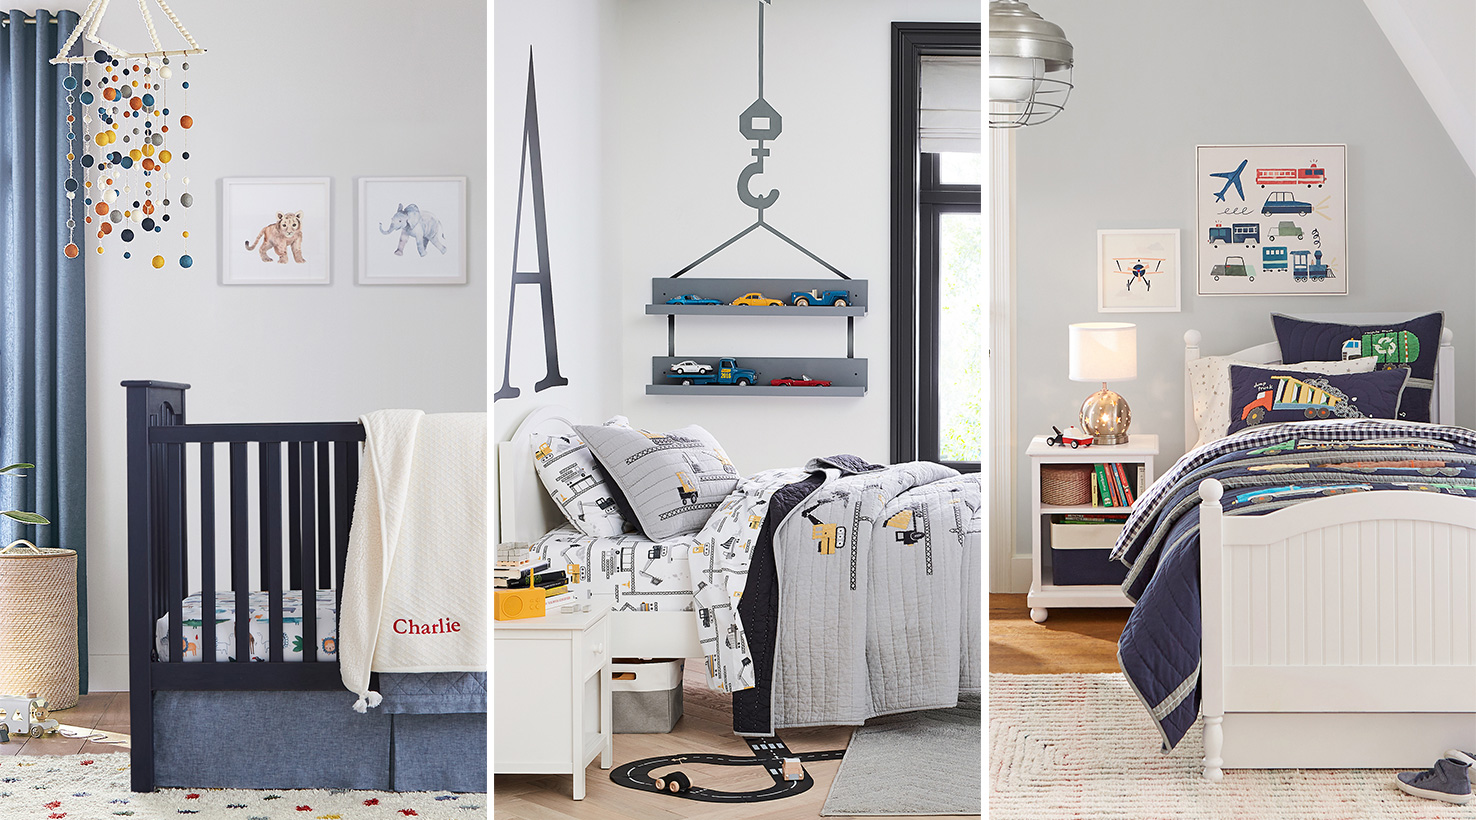 Pottery Barn Kids Spring Summer 2019 Paint Palettes Make It Easy To Create The Perfect Nursery Bedroom Or Playroom From Soft Pastels Rich Bold Hues